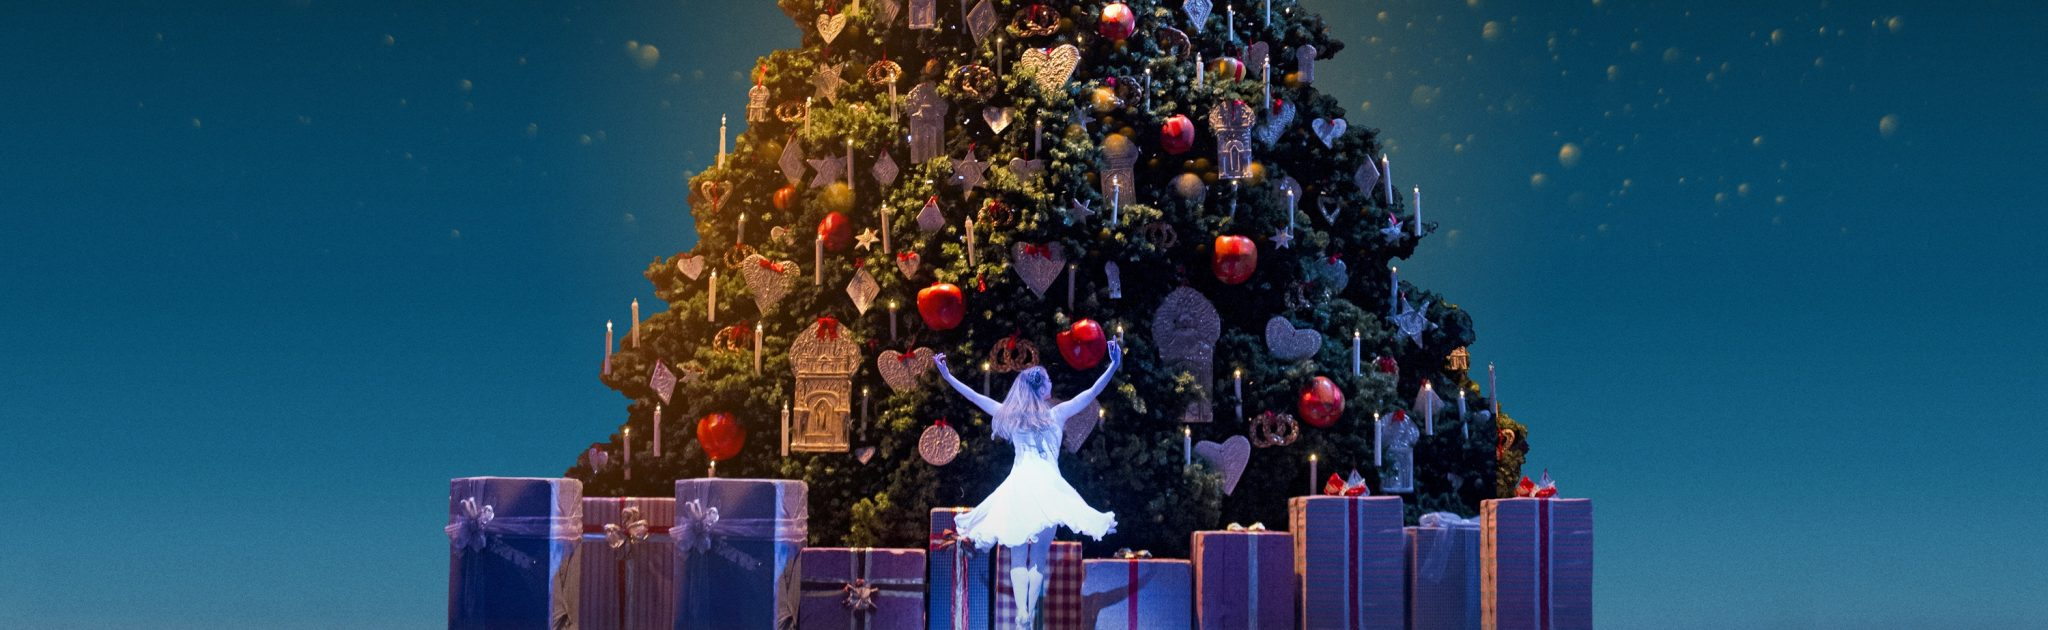 Meaghan-Grace-Hinkis-as-Clara-in-The-Nutcracker-The-Royal-Ballet-cROHTristram-Kenton-2013.-Image-by-AKA-cROH-2016-Cropped